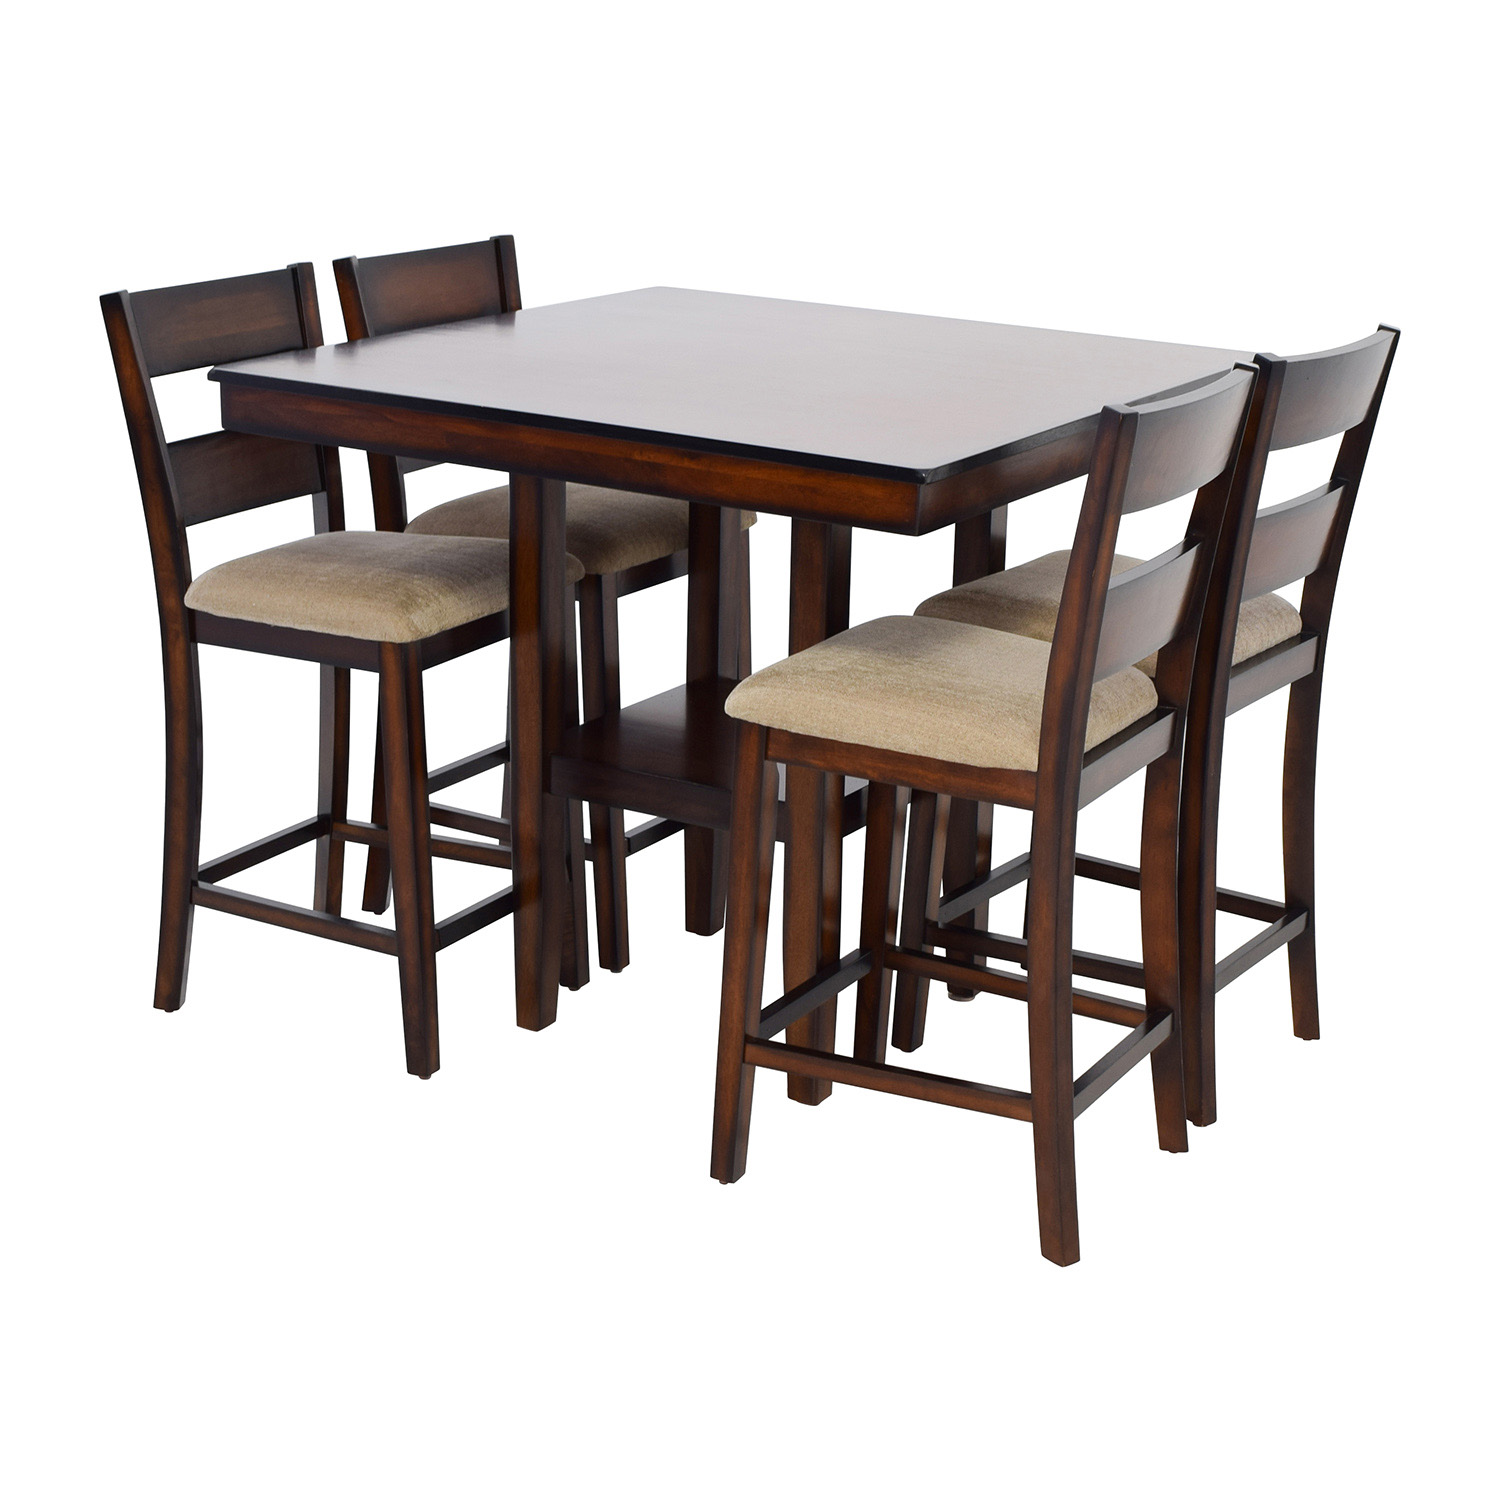 Pleasing 73 Off Macys Macys Branton Counter Height Table With Chairs Tables Home Interior And Landscaping Ologienasavecom